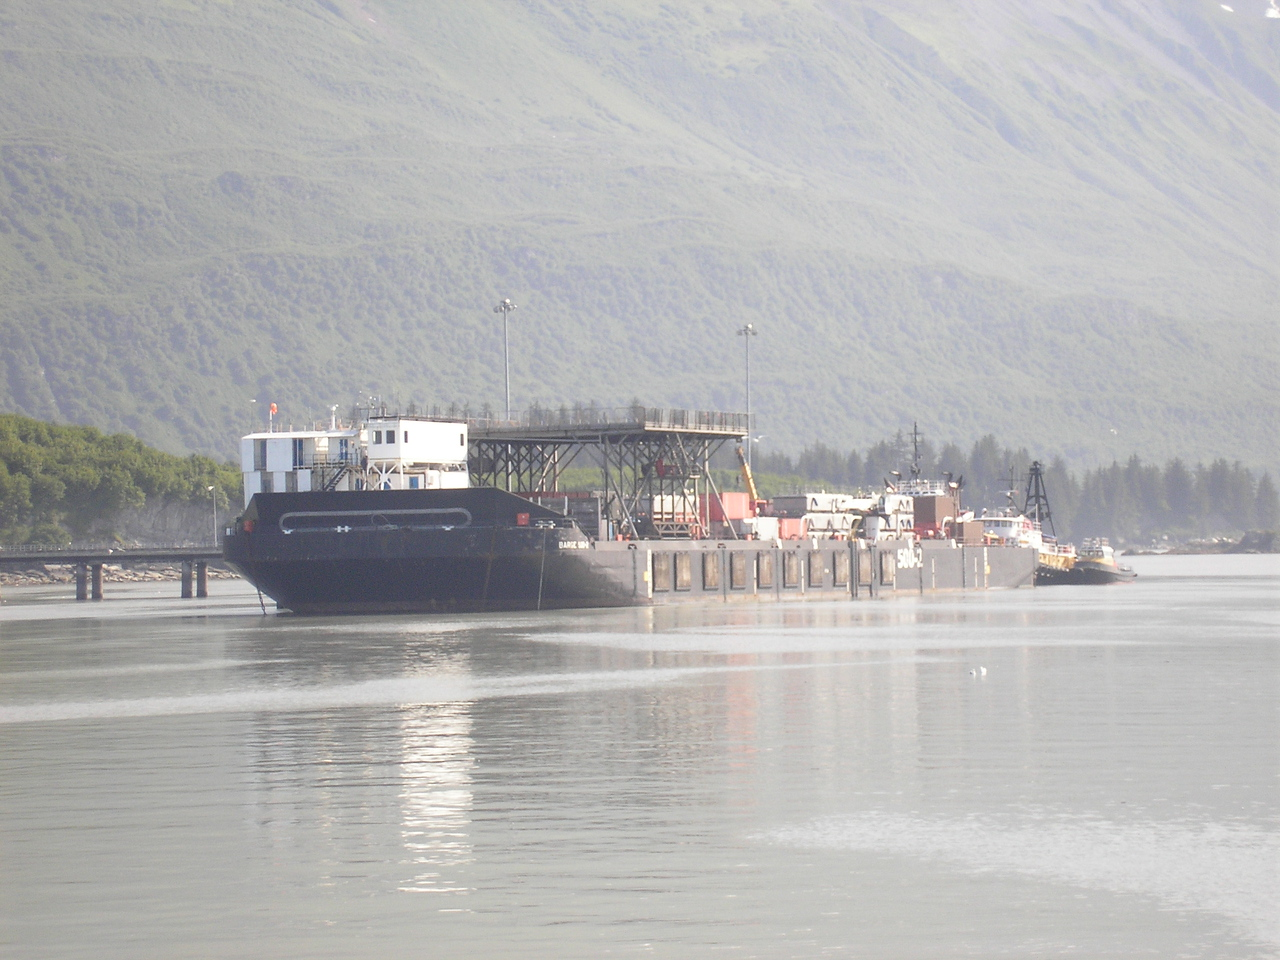 Our Captian said that this is an Oil Spill Containment ship. It has never been used, they commissioned the vessel after the Exxon Valdez spill.